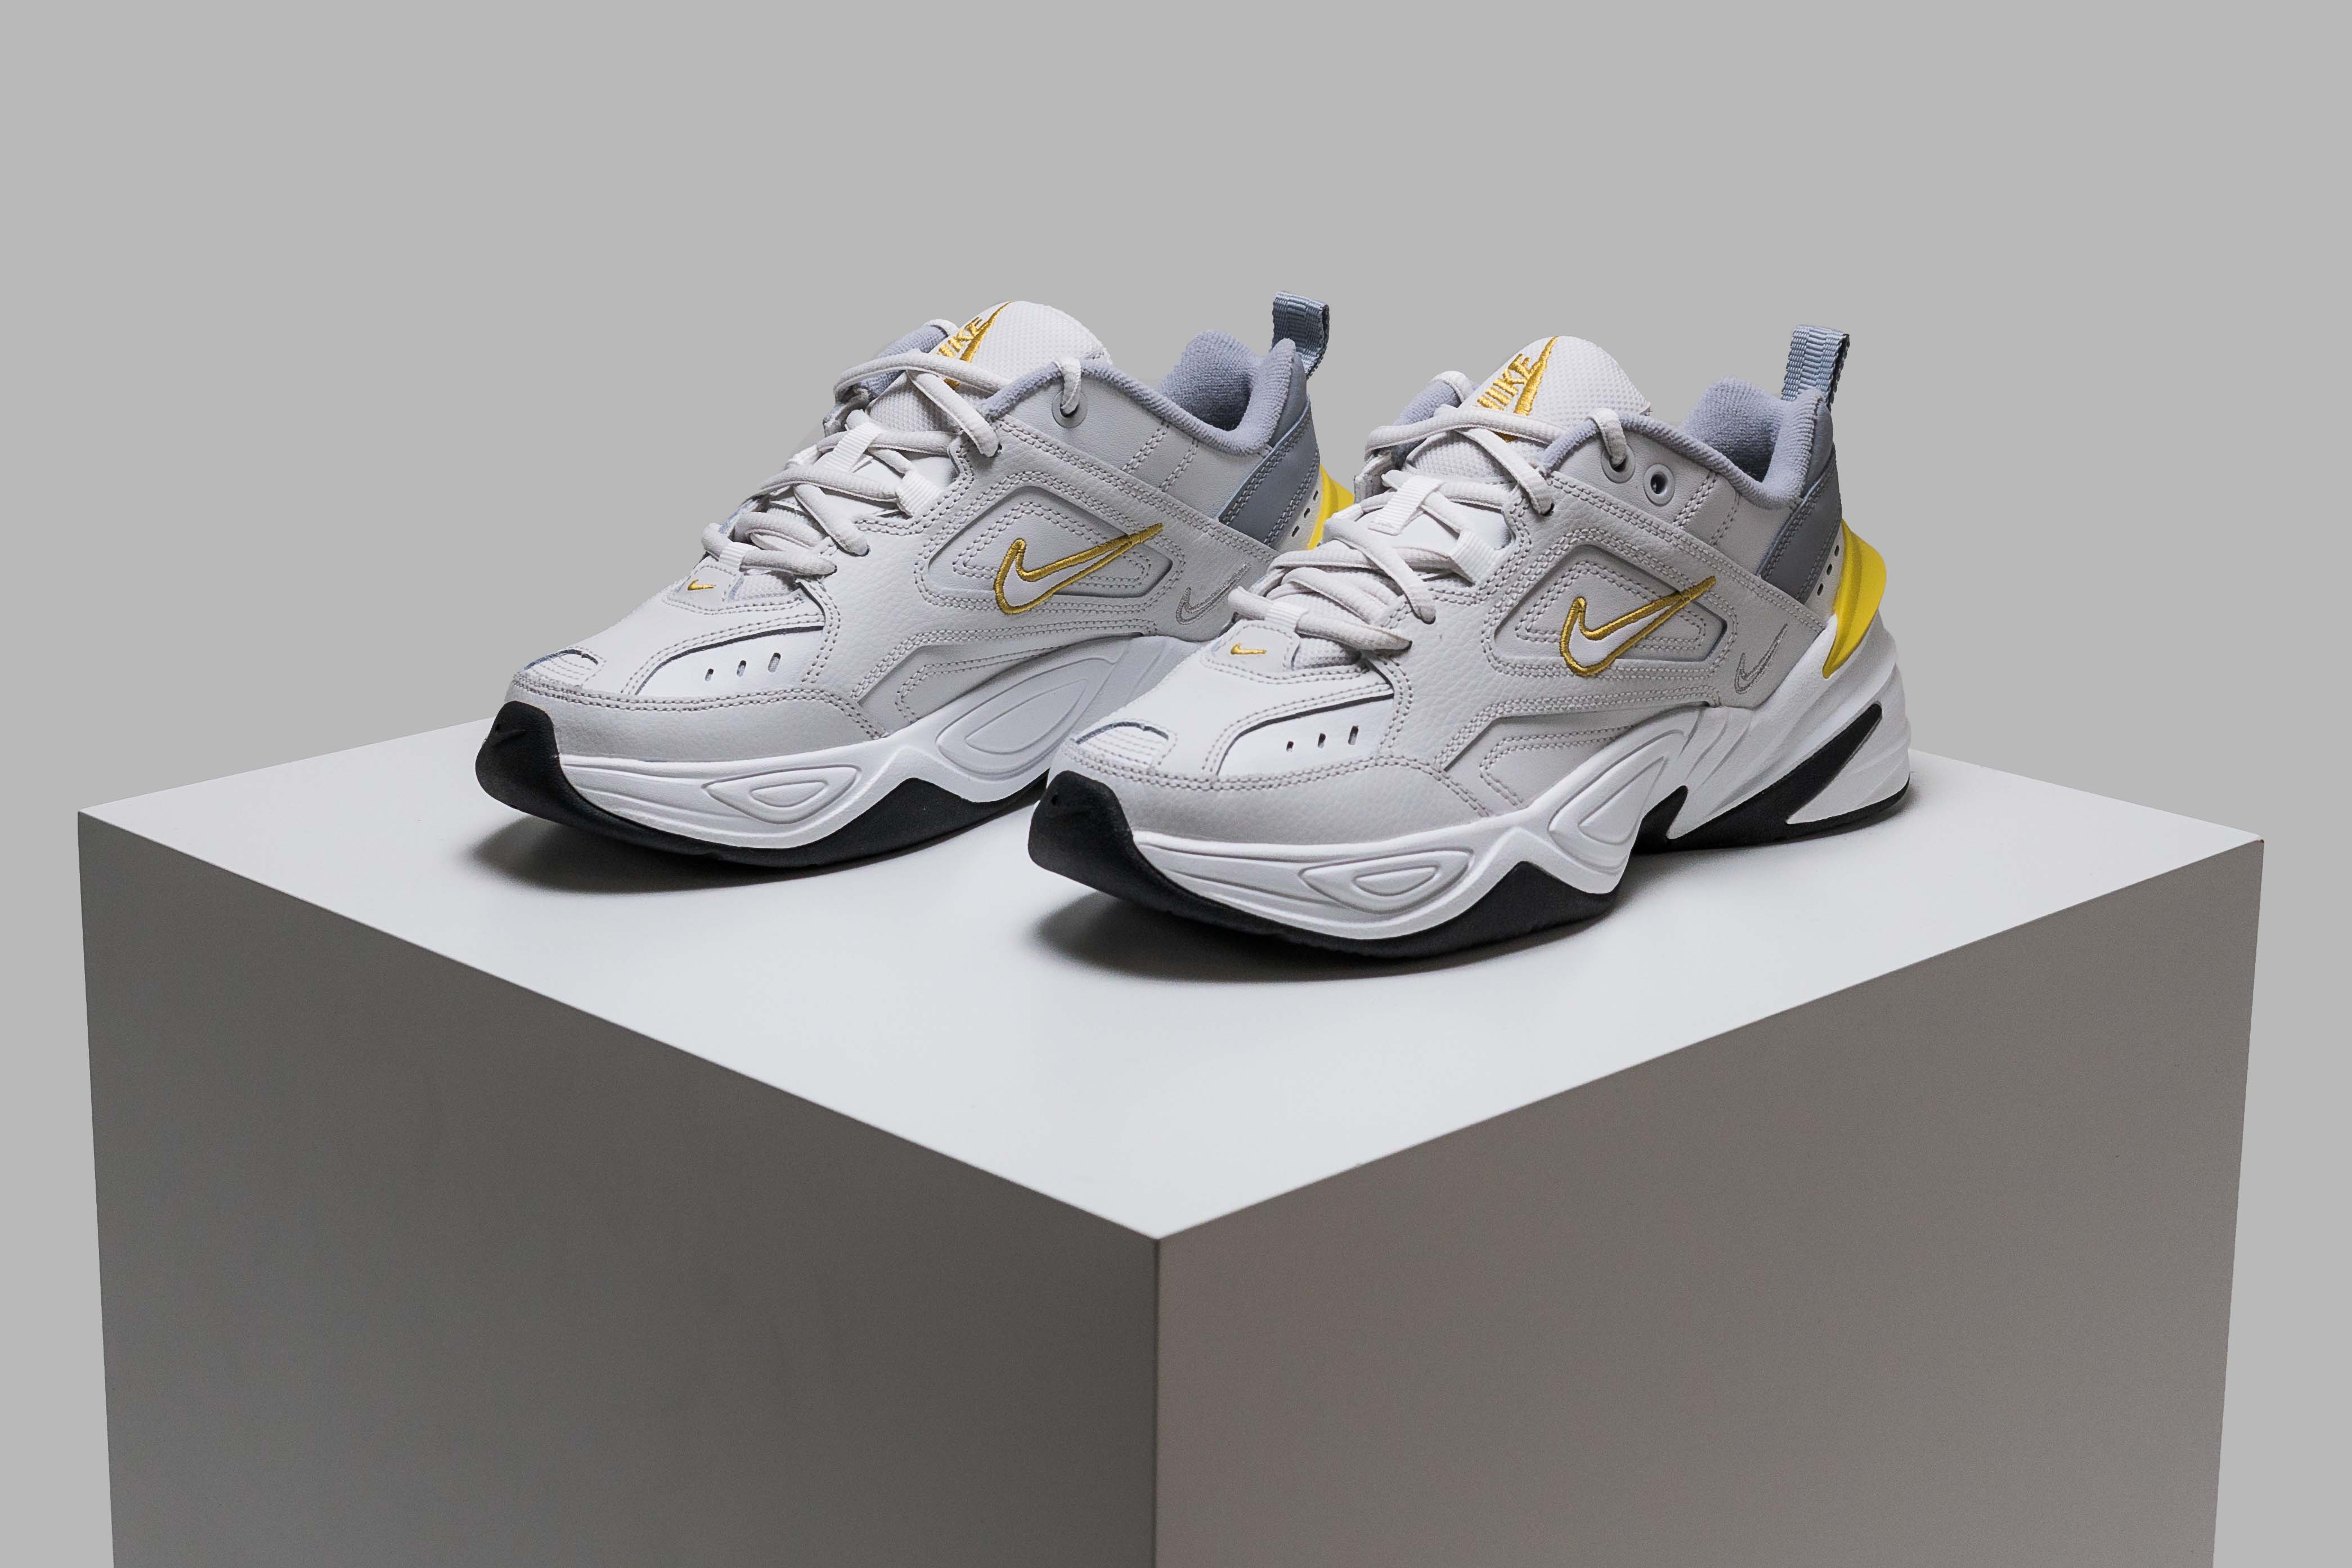 The Latest Nike M2K Tekno Colourways Are Made For The Minimalists ... a5cdd7551